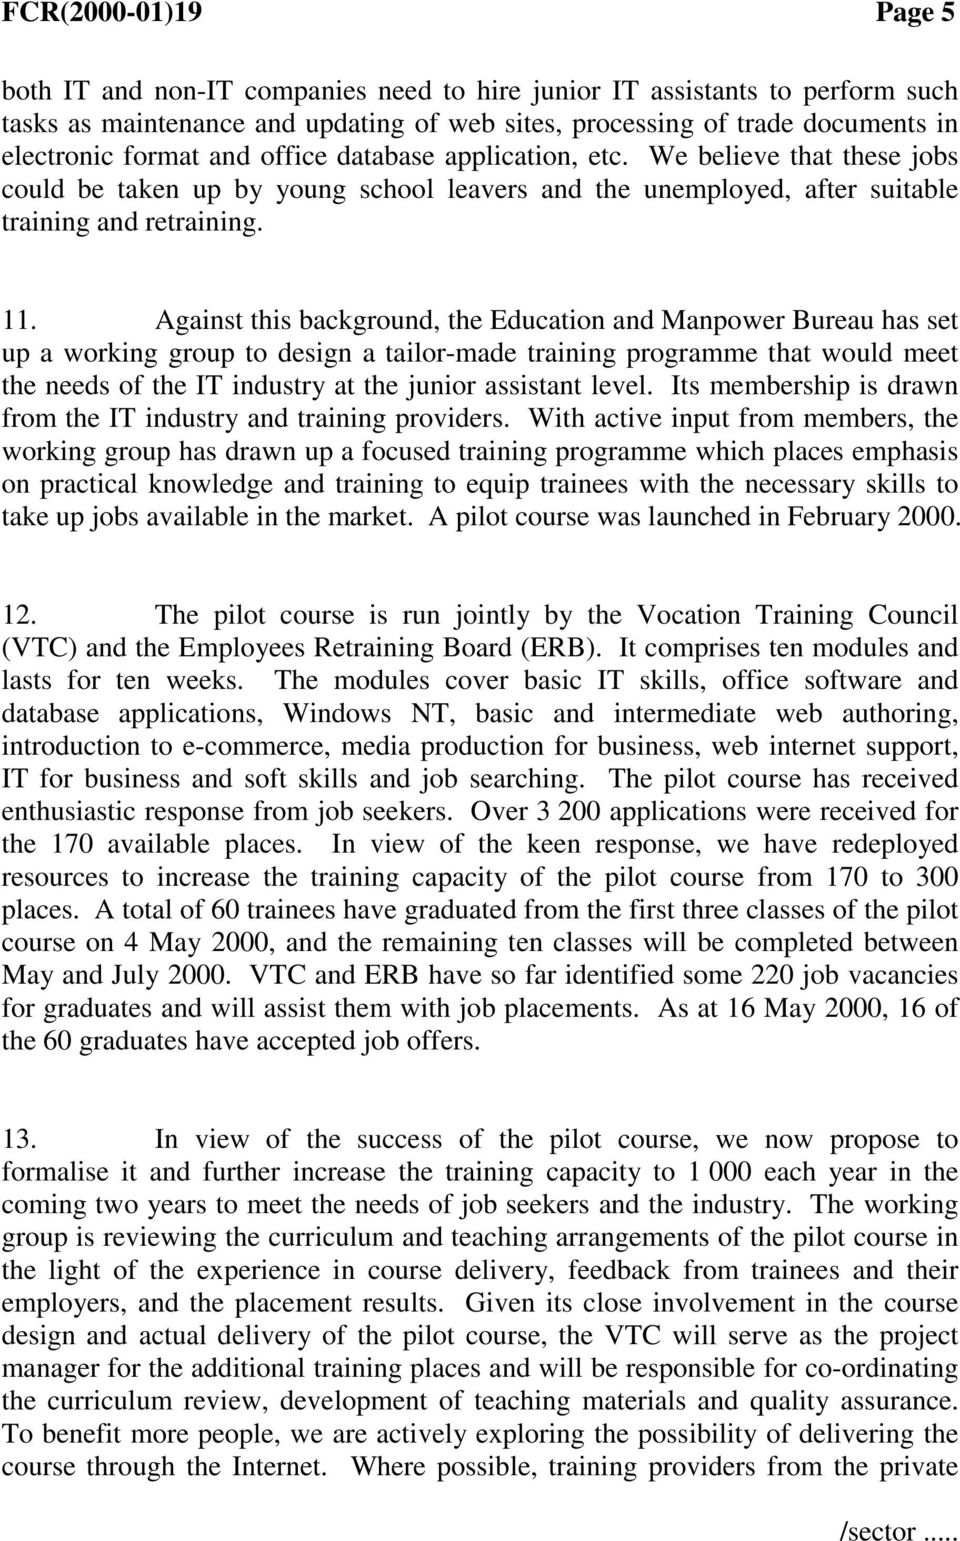 Against this background, the Education and Manpower Bureau has set up a working group to design a tailor-made training programme that would meet the needs of the IT industry at the junior assistant